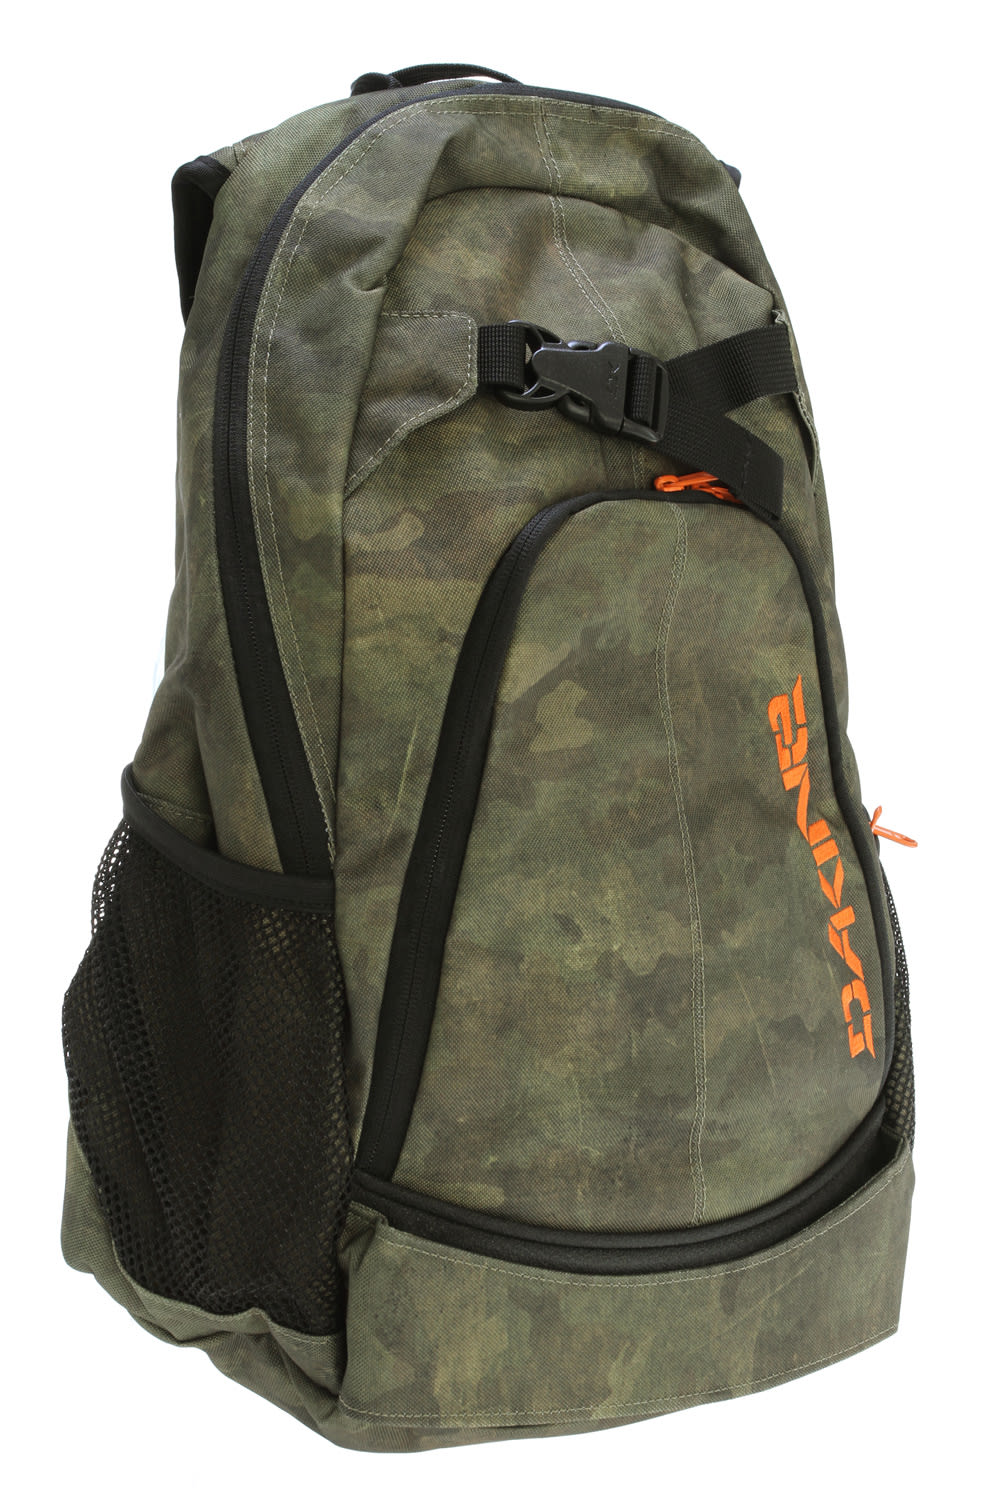 Shop for Dakine Pivot Backpack Timber - Men's